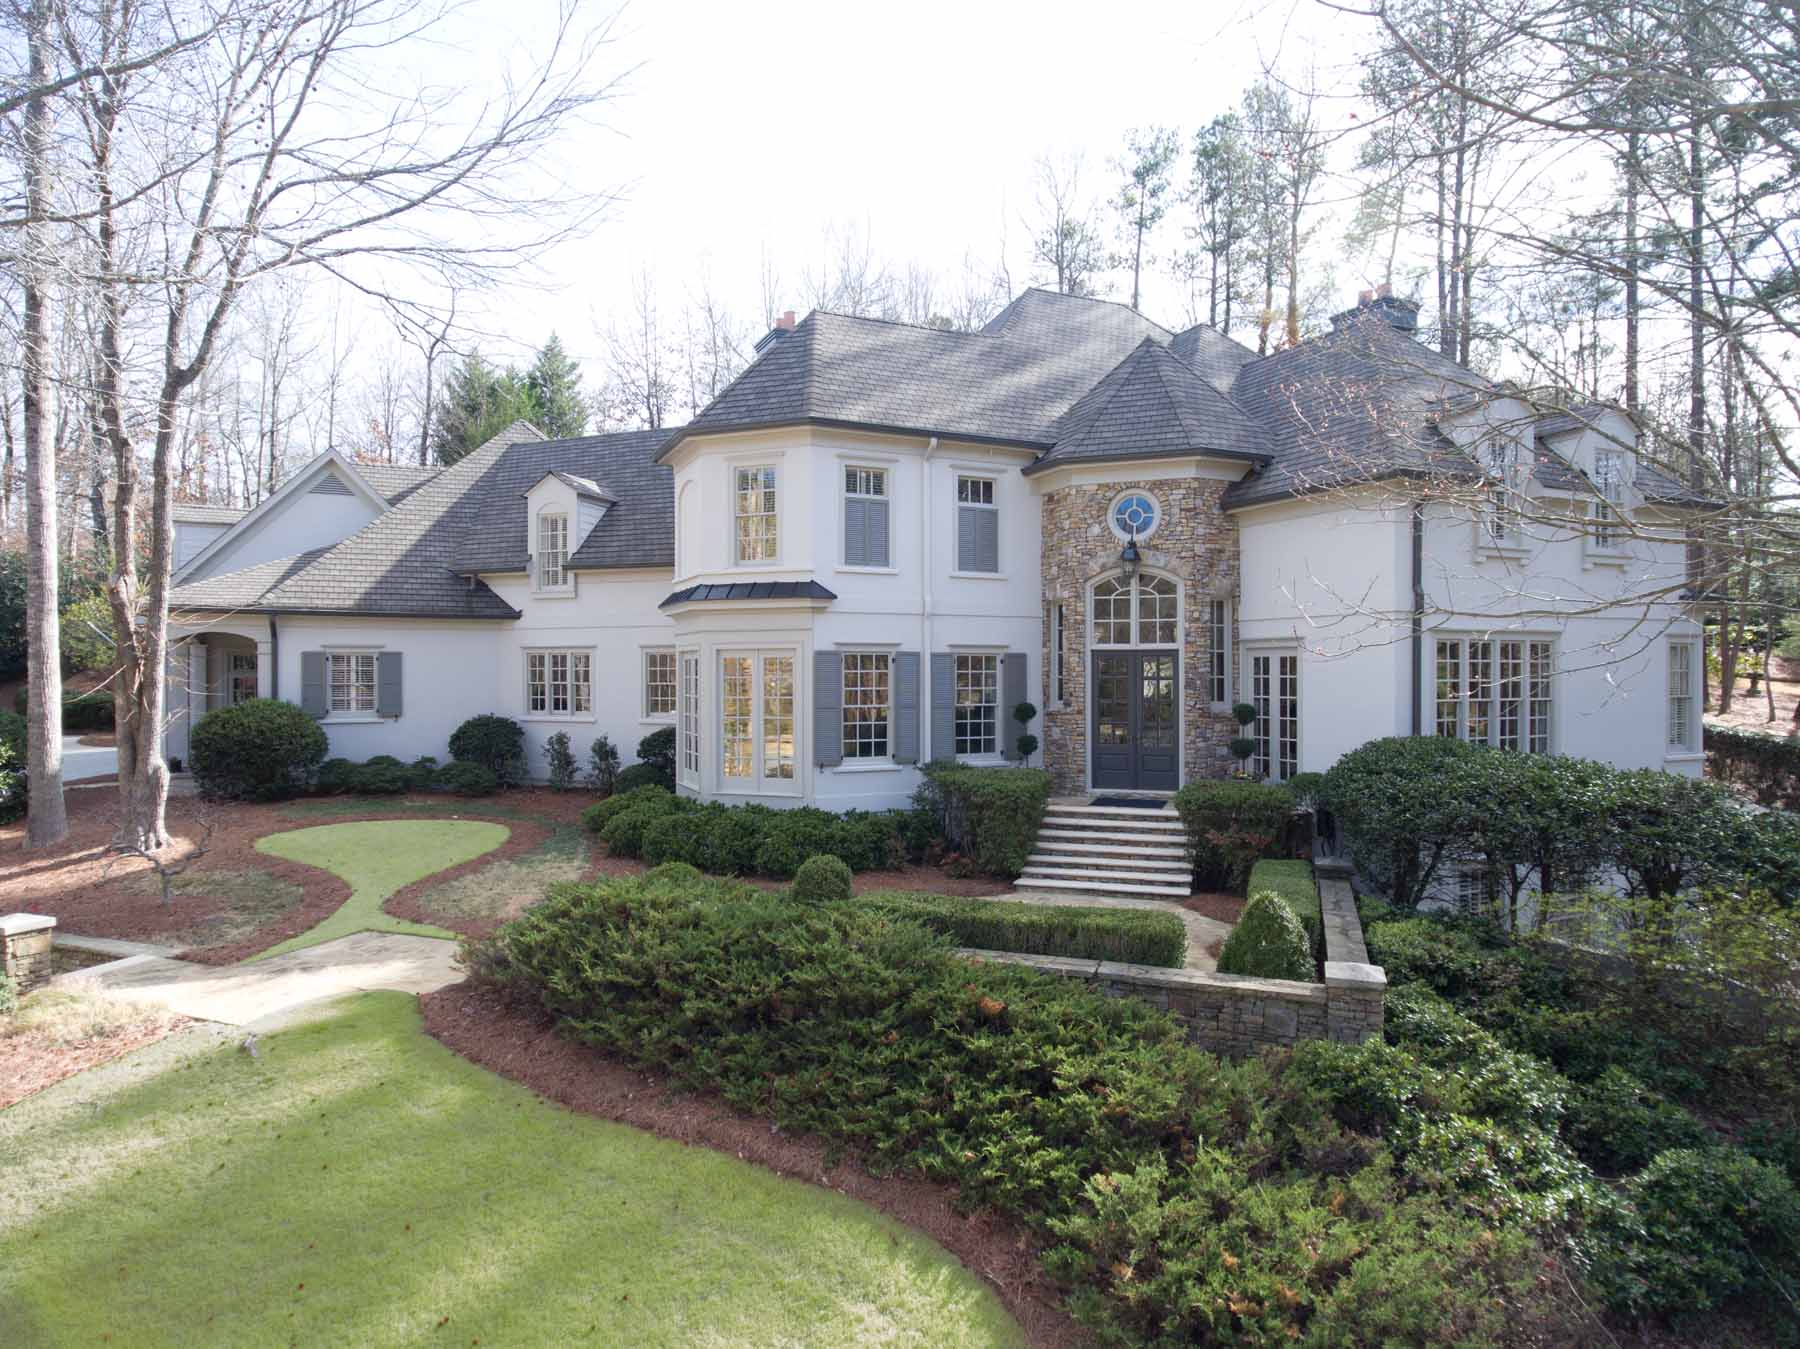 Single Family Home for Sale at Beautifully Renovated Country Club Of The South Decorator Home 405 Covington Cove Alpharetta, Georgia, 30022 United States